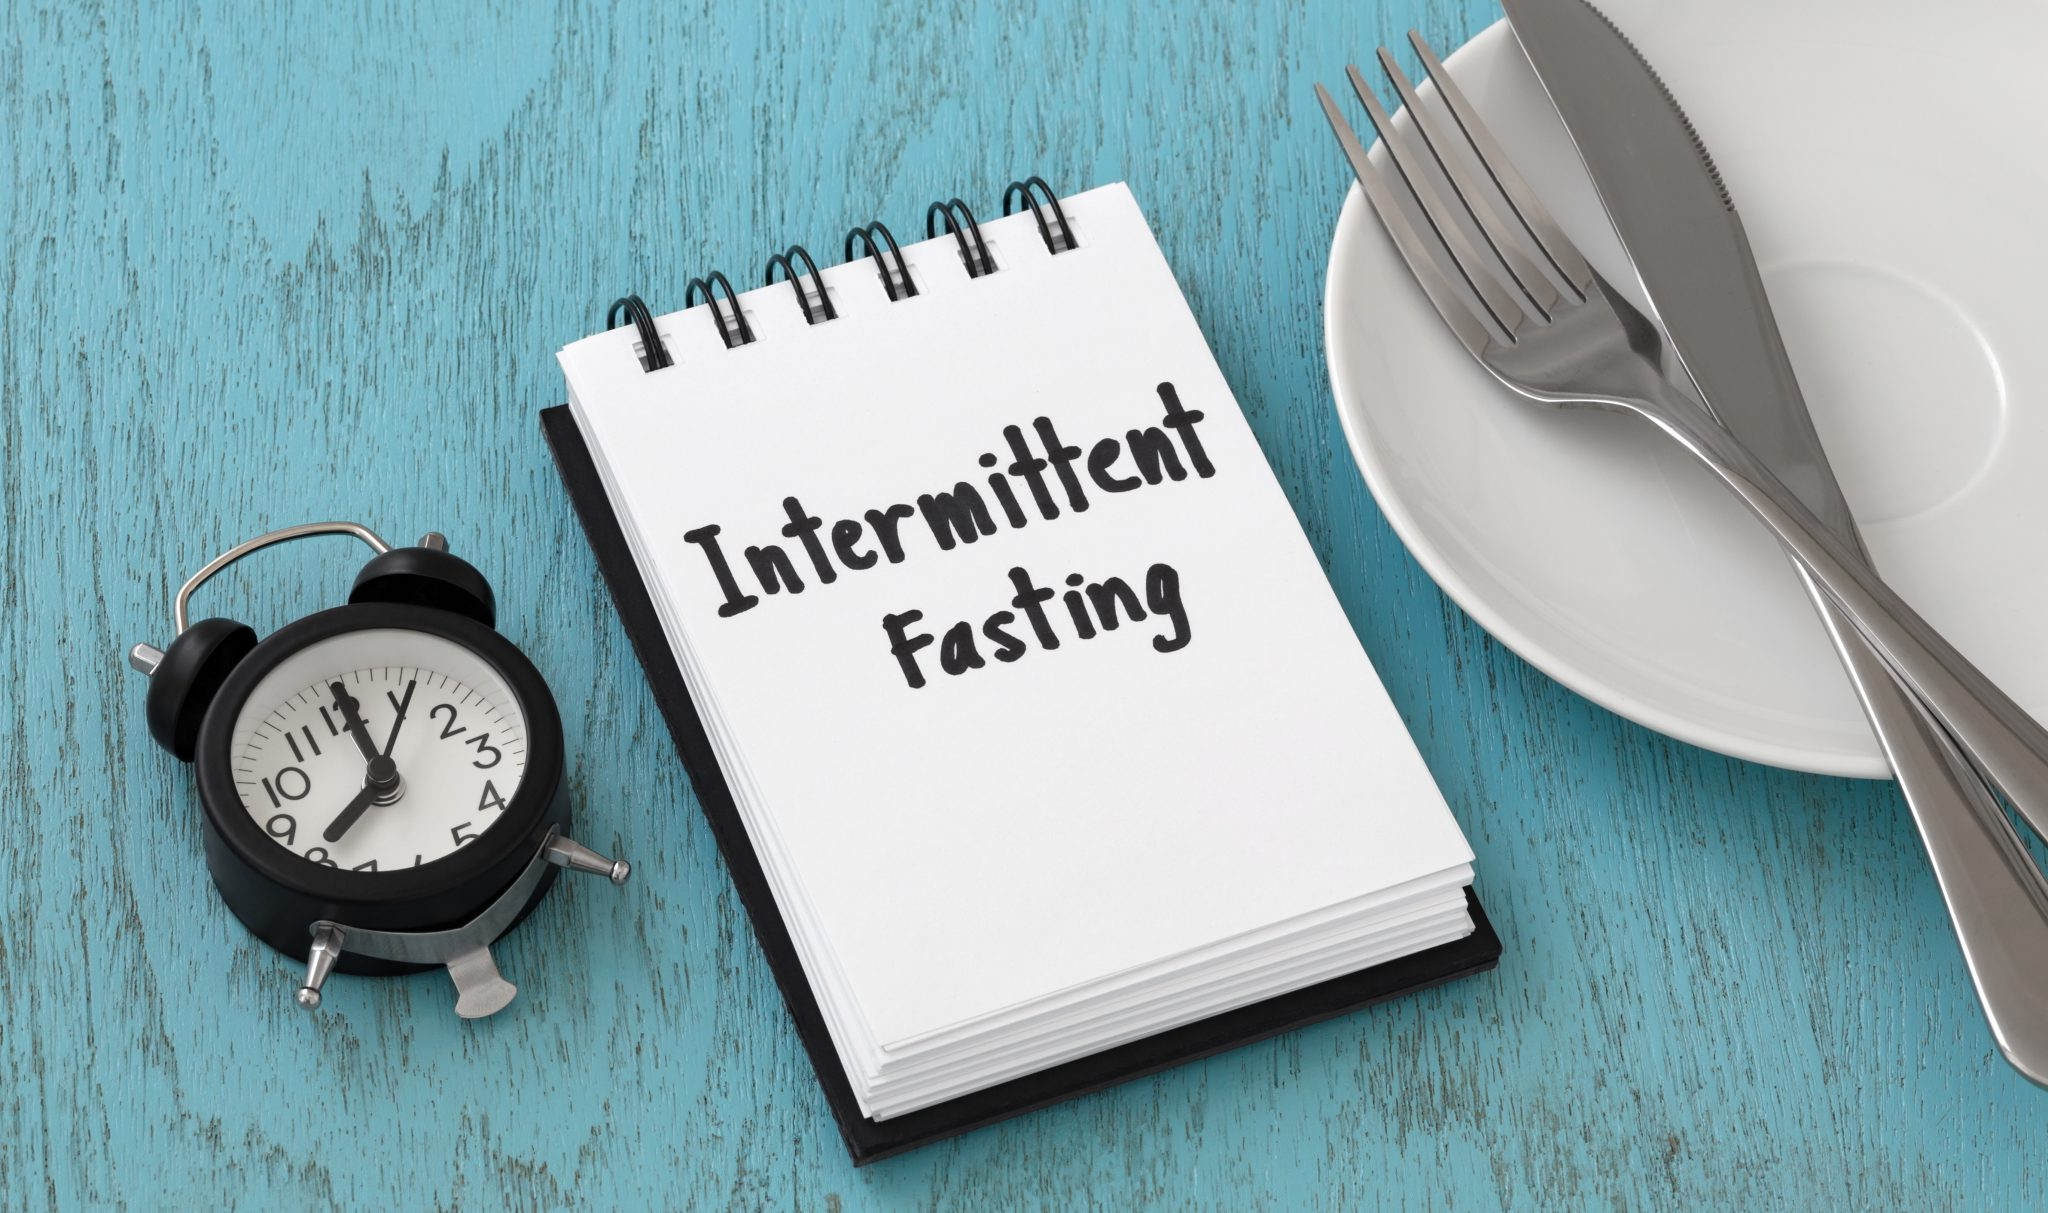 Time Restricted Fasting – a potential tool for weight loss.